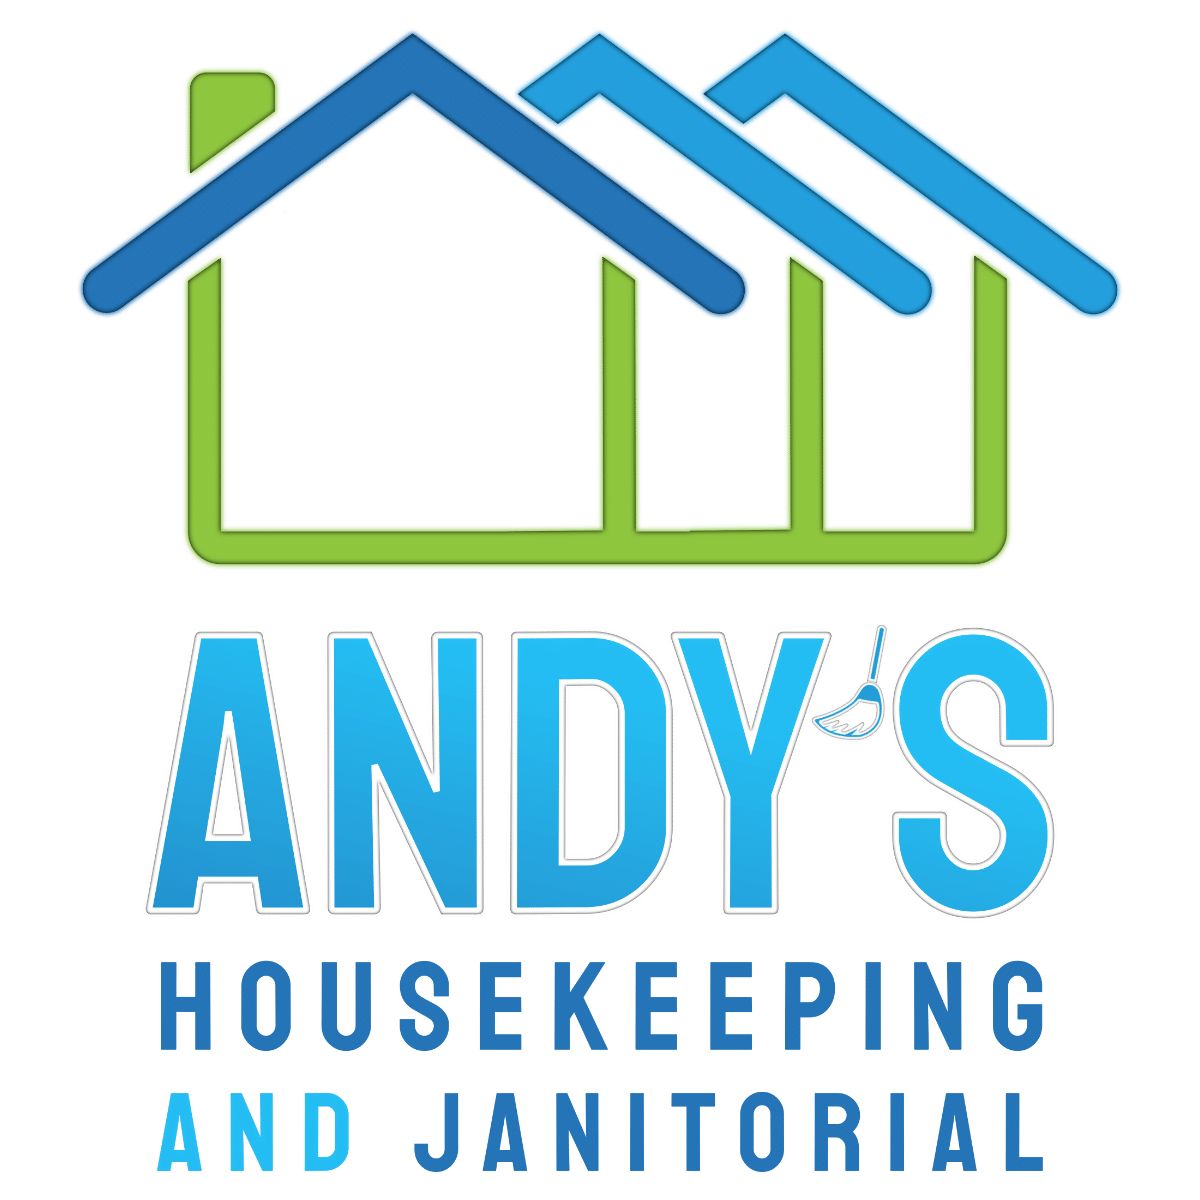 Andy's Housekeeping & Janitorial Services - Hillsboro, Beaverton, Tigard